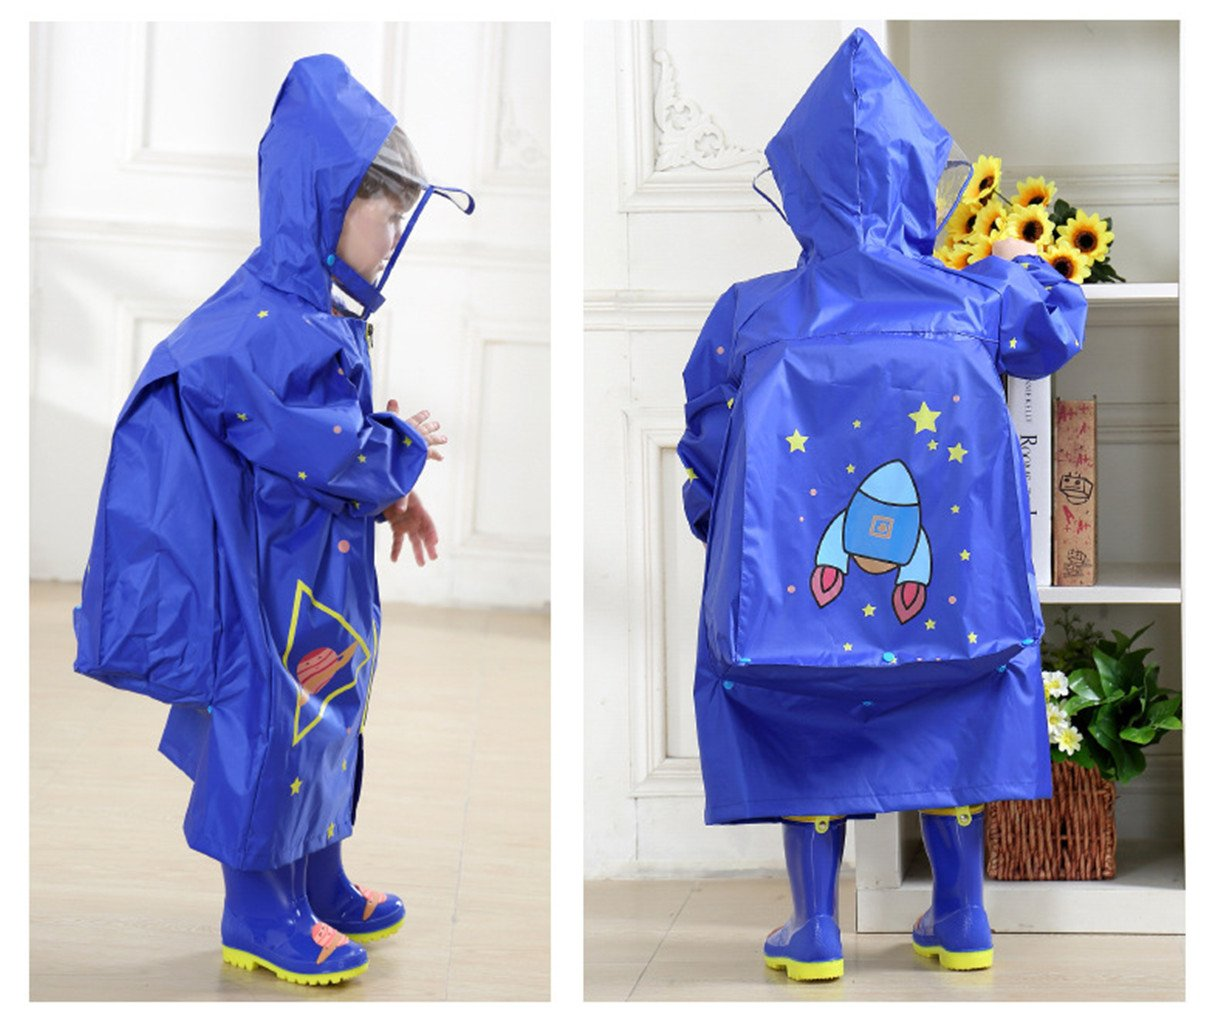 WYTbaby Kids Raincoats, Boys Girls Hooded Rain Poncho with School Bag Position,Blue by WYTbaby (Image #6)